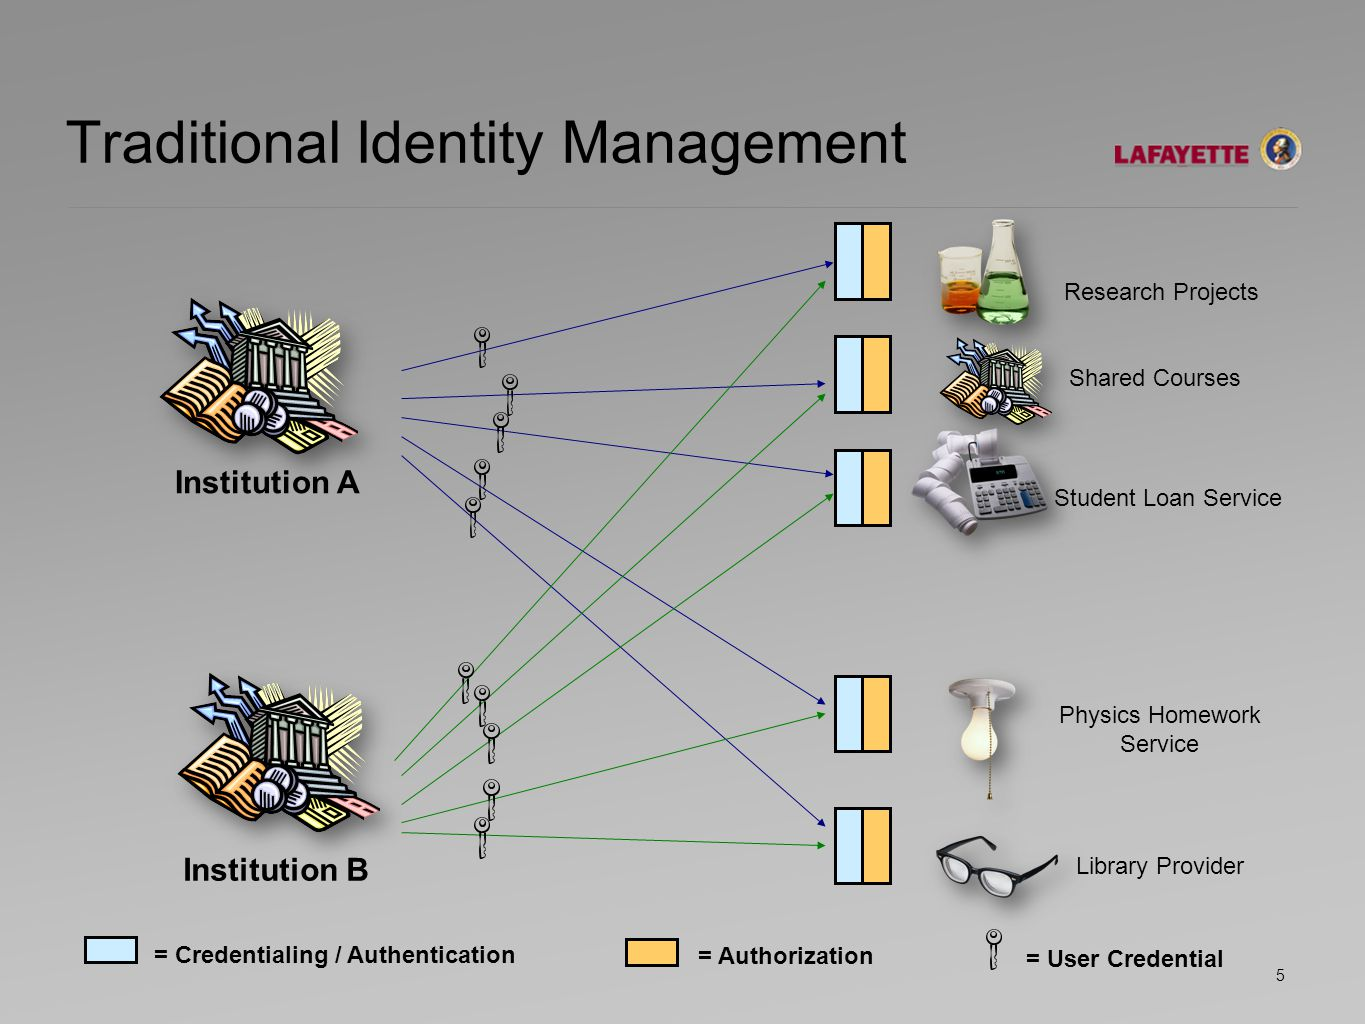 Federated Identity Concept Institution A Institution B = Credentialing / Authentication = Authorization = User Credential Research Projects Physics Homework Service Shared Courses Library Provider Student Loan Service Federation 6